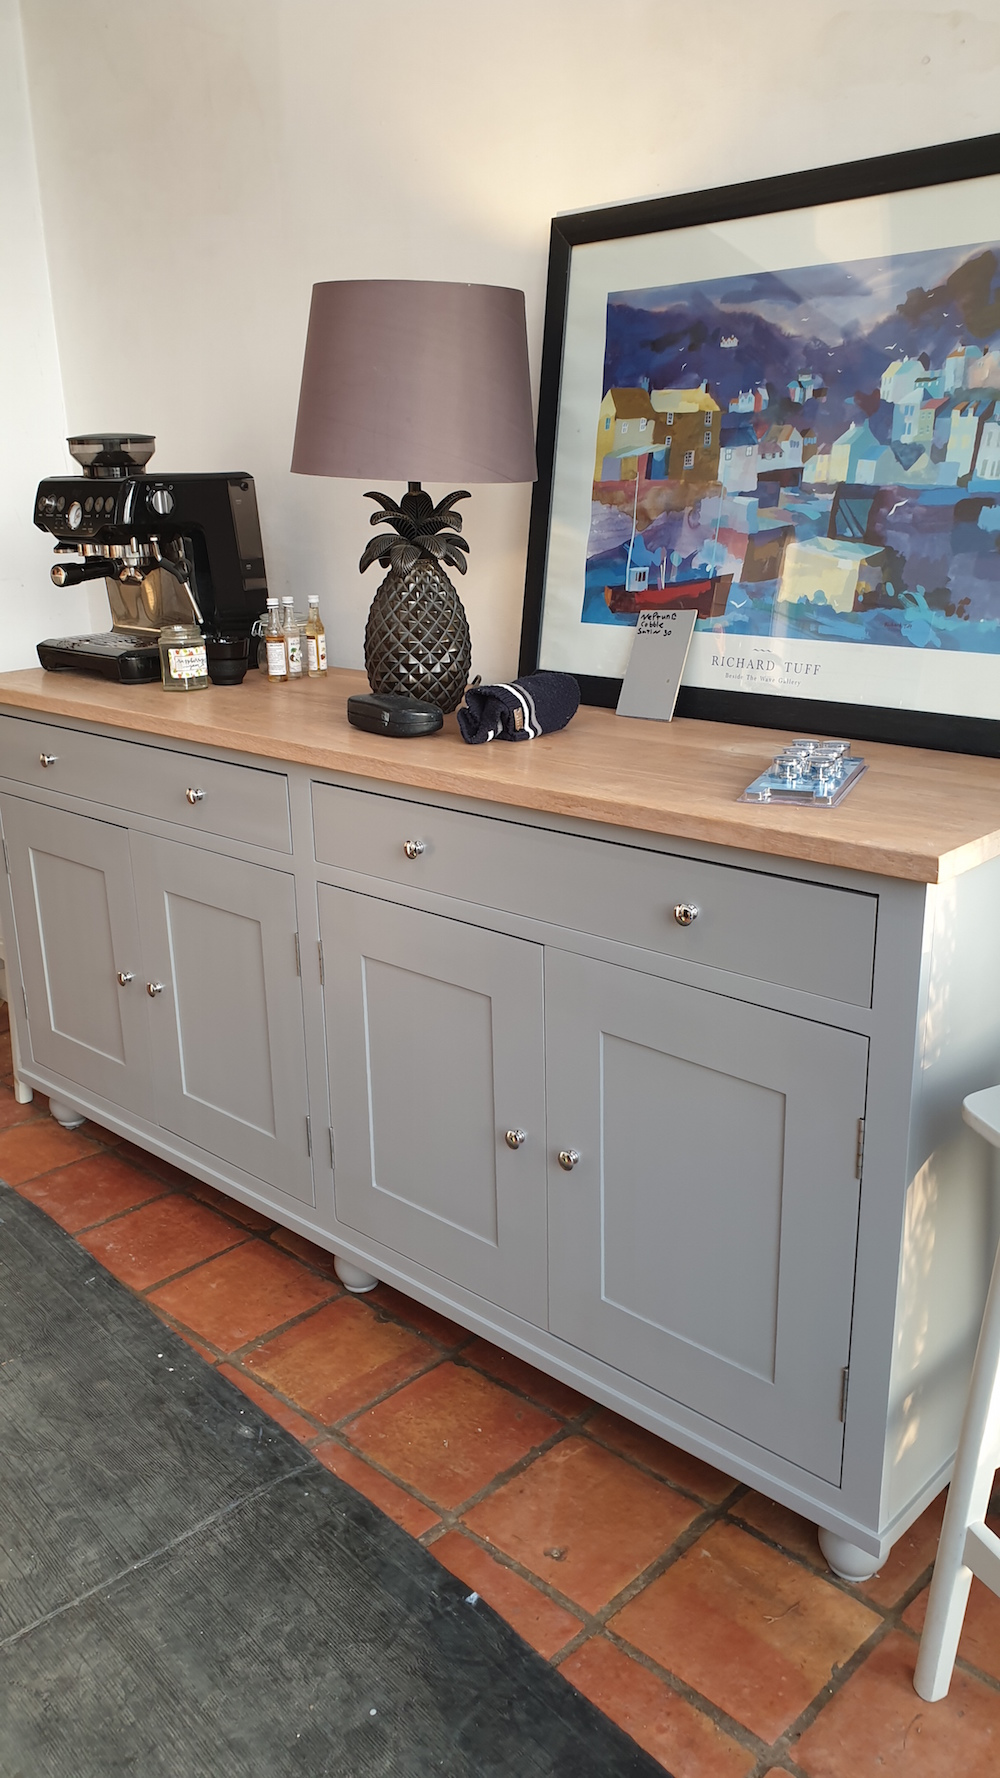 Neptune furniture hand painted by Traditional Painter Paul Barber